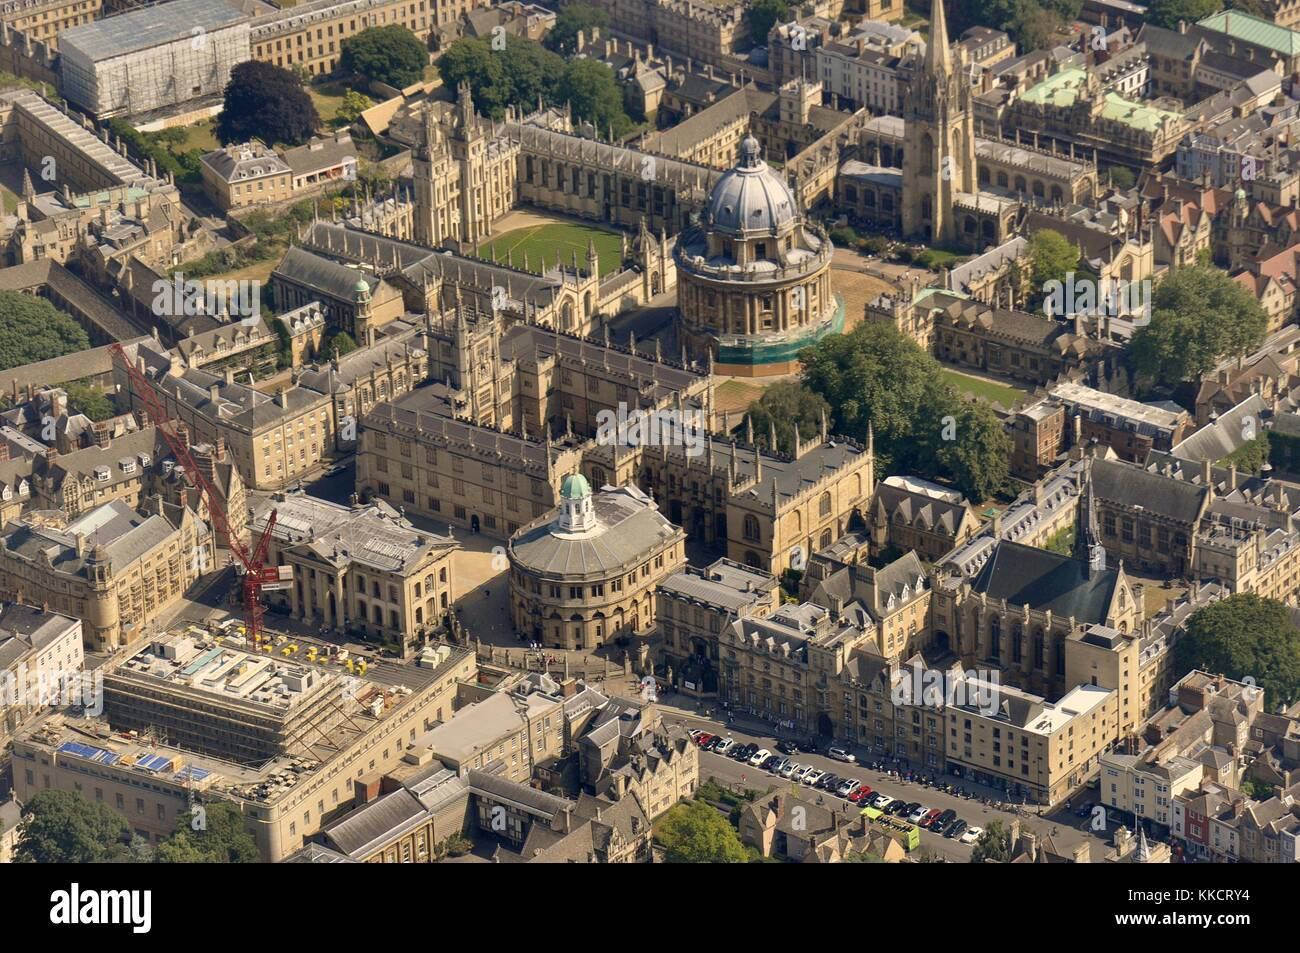 Oxford From The Air Stock Photo